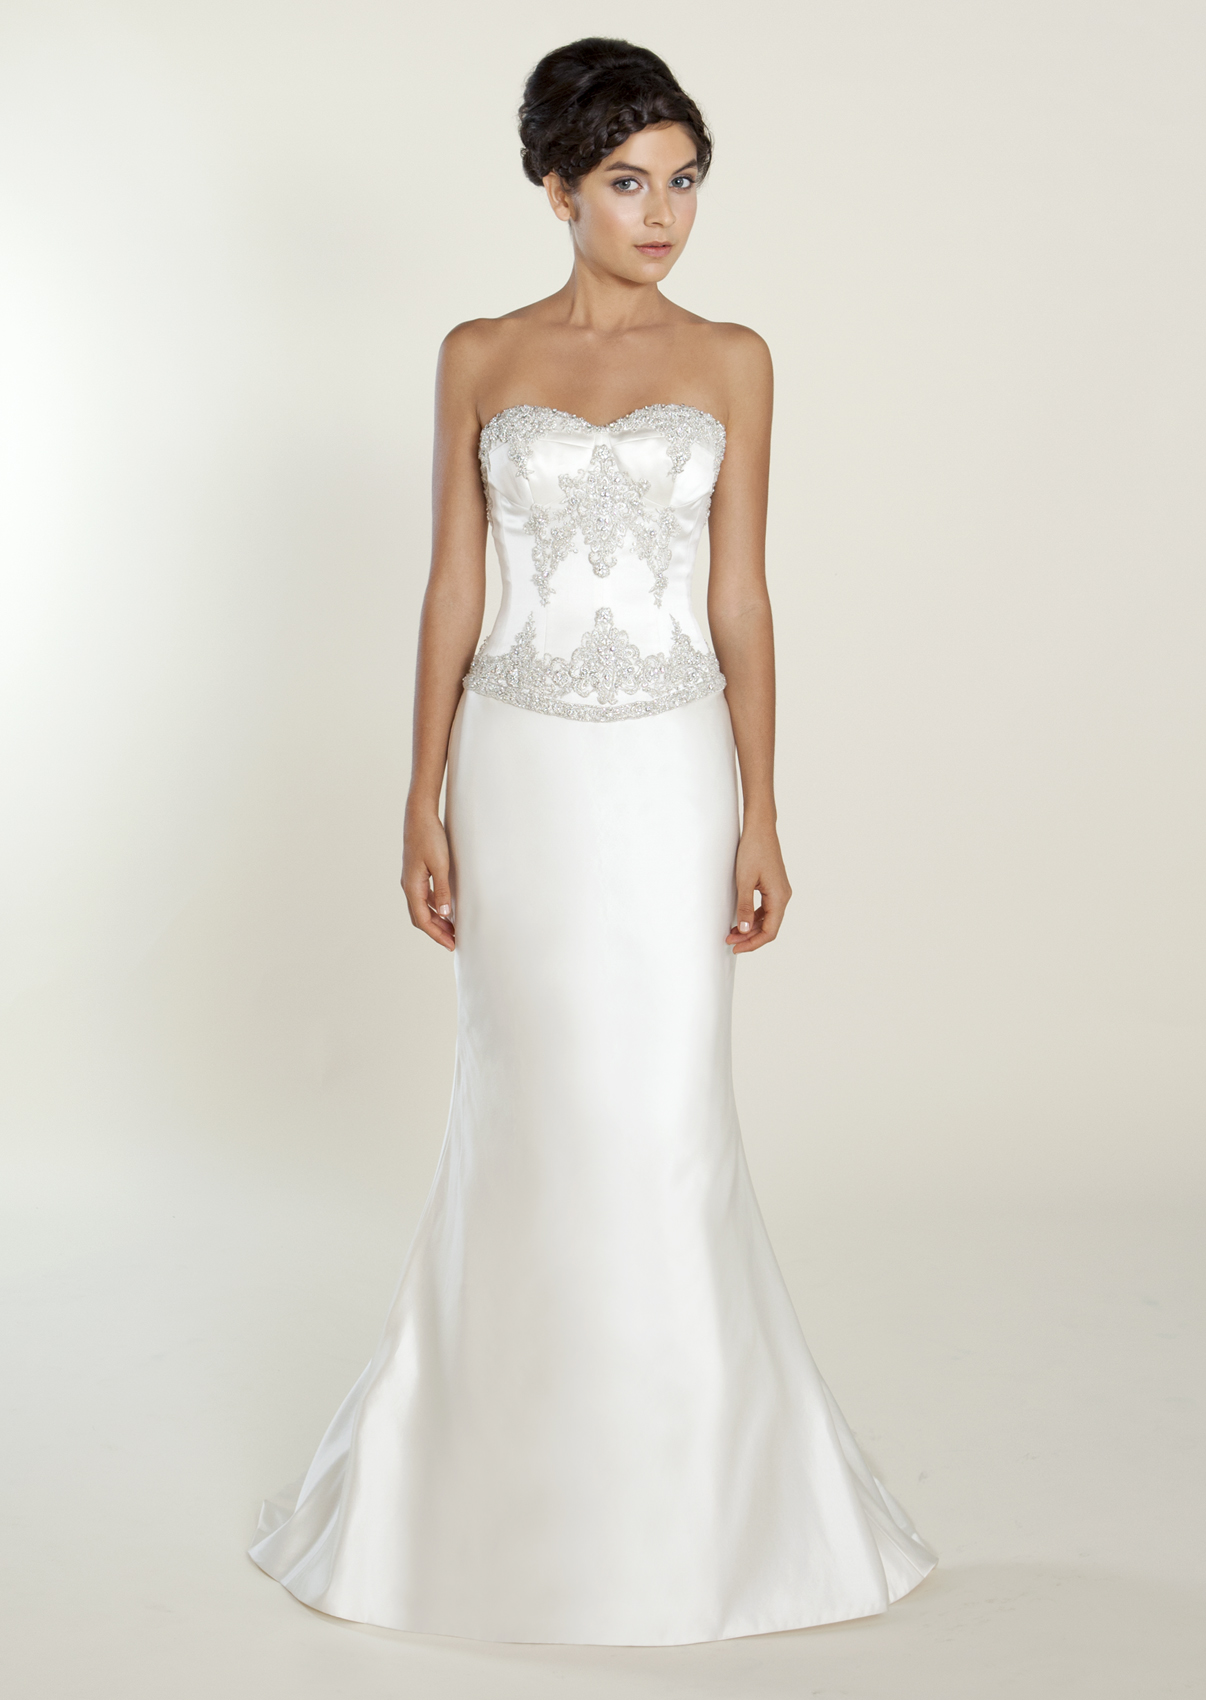 Medeleine Gown from the Winnie Couture Diamond Collection